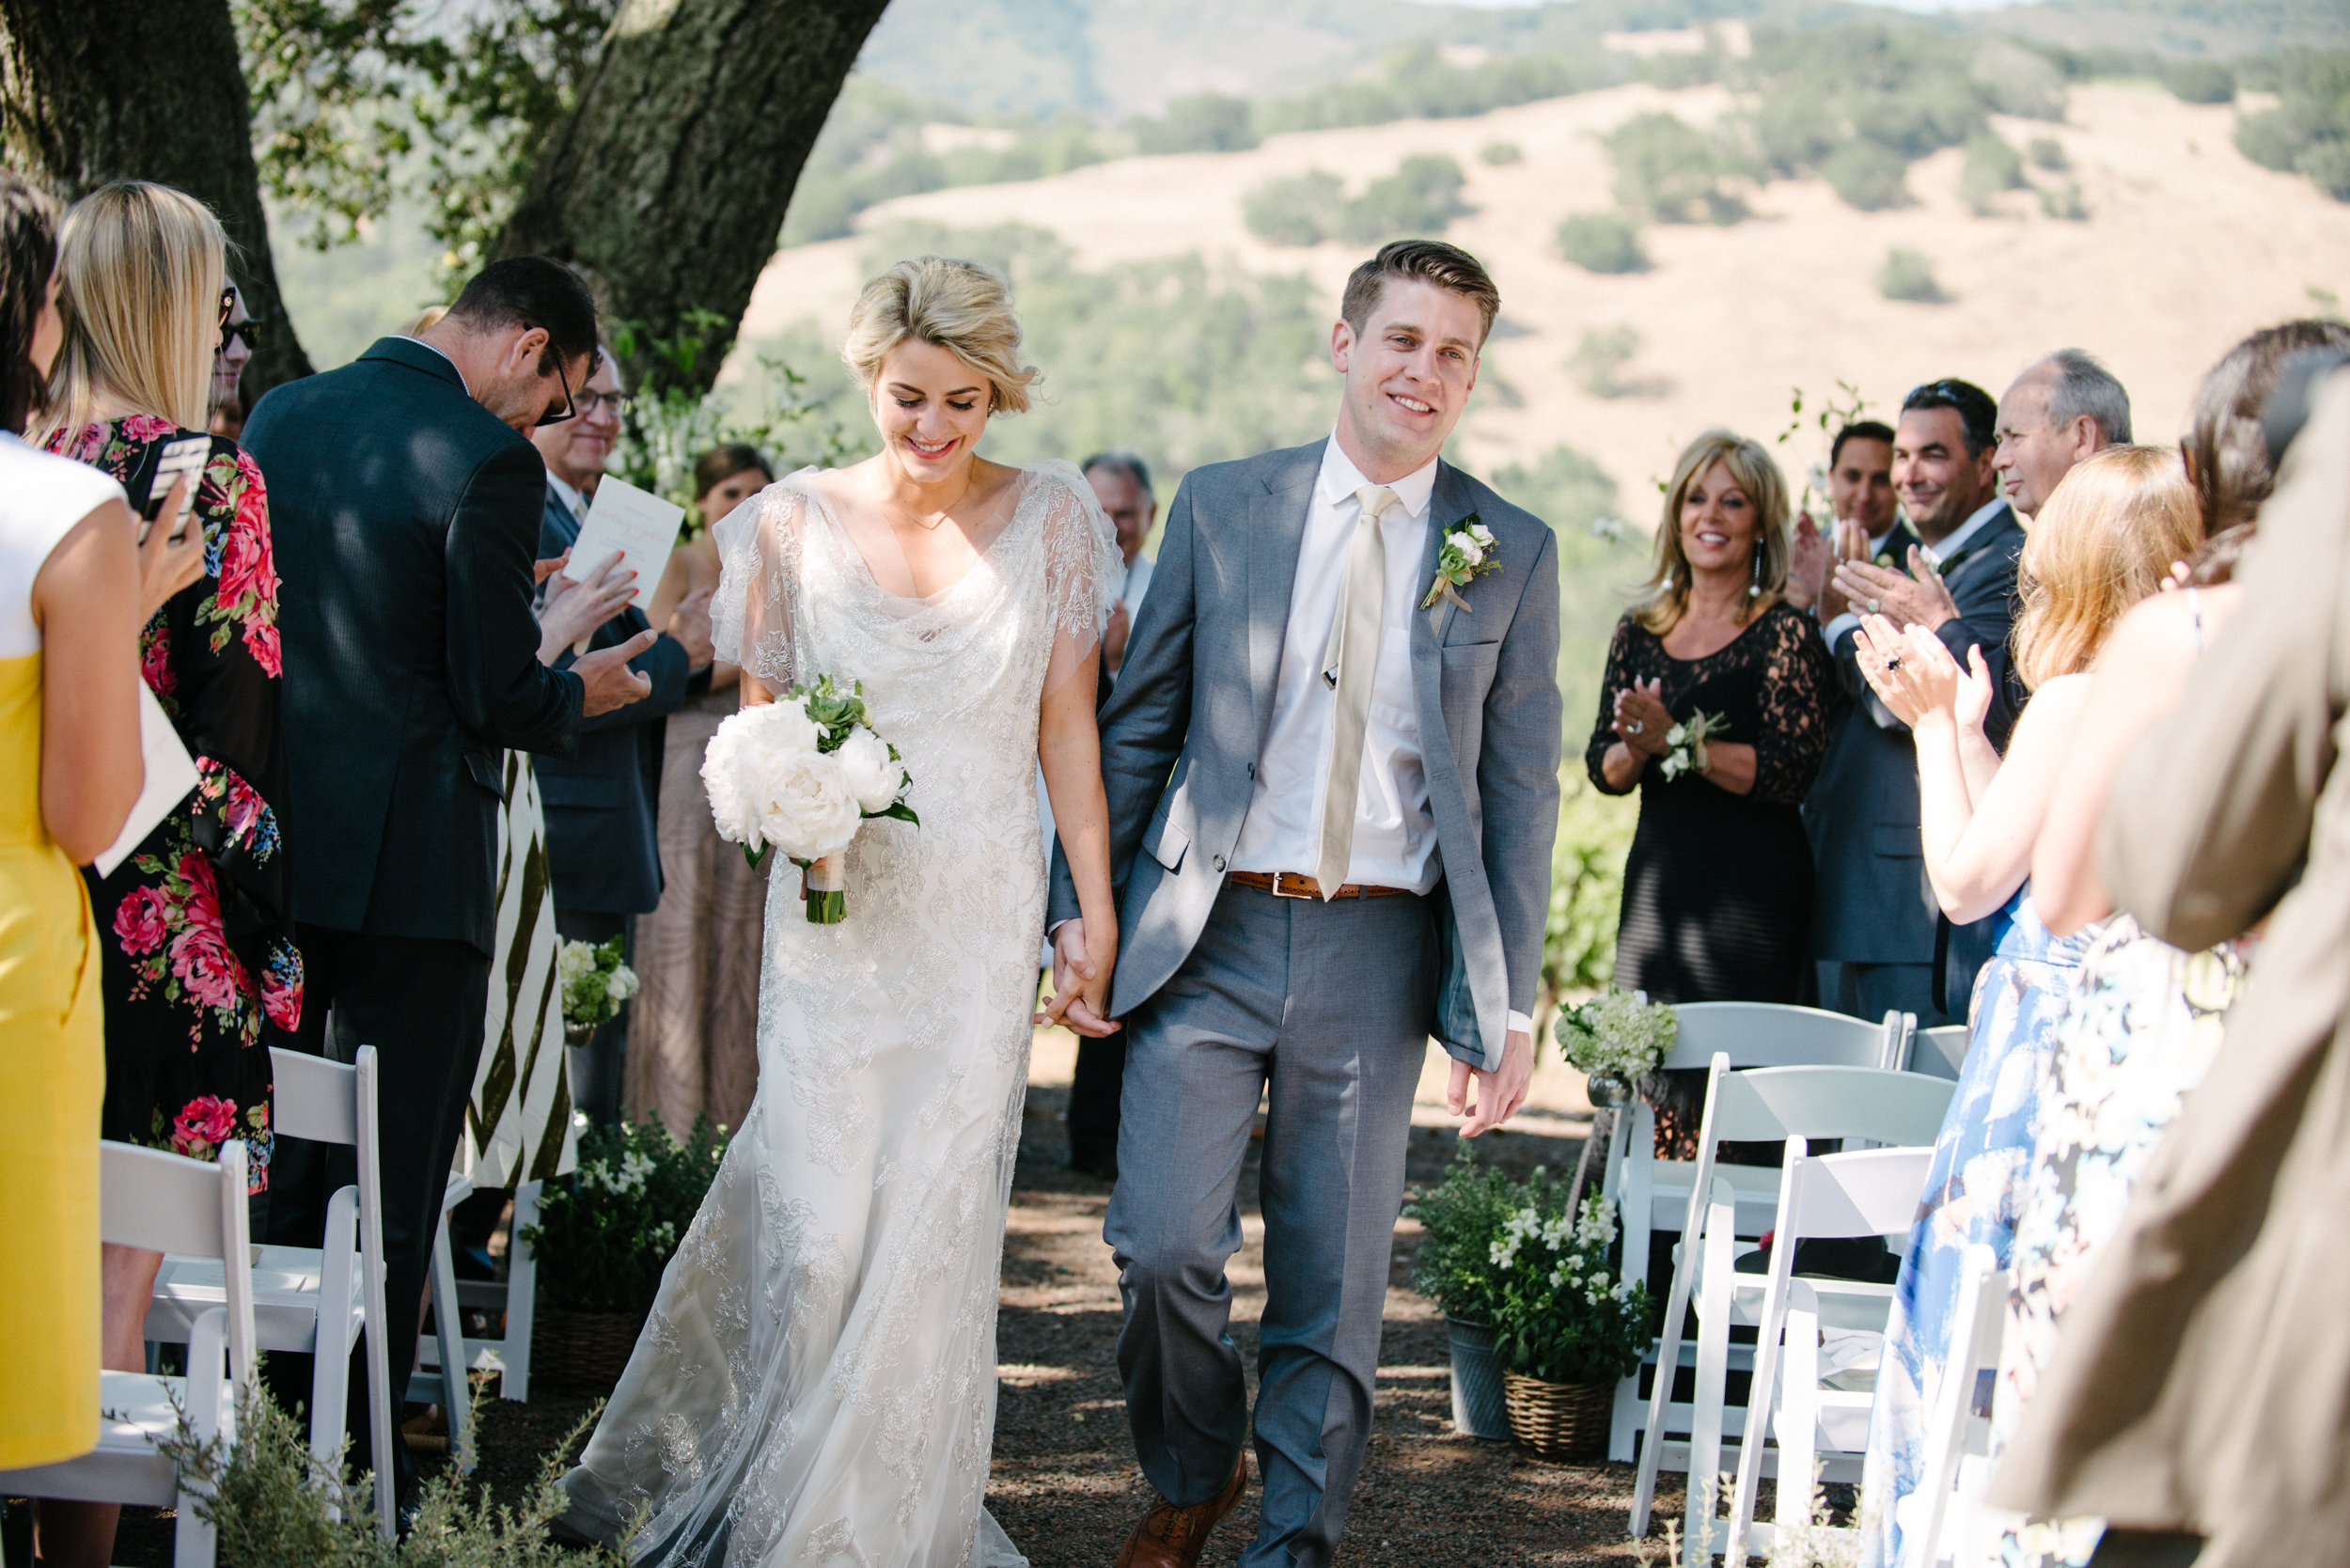 Sylvie-Gil-film-destination-photography-Kunde-winery-Napa-Valley-elegant-shabby-chic-bride-groom-just-married